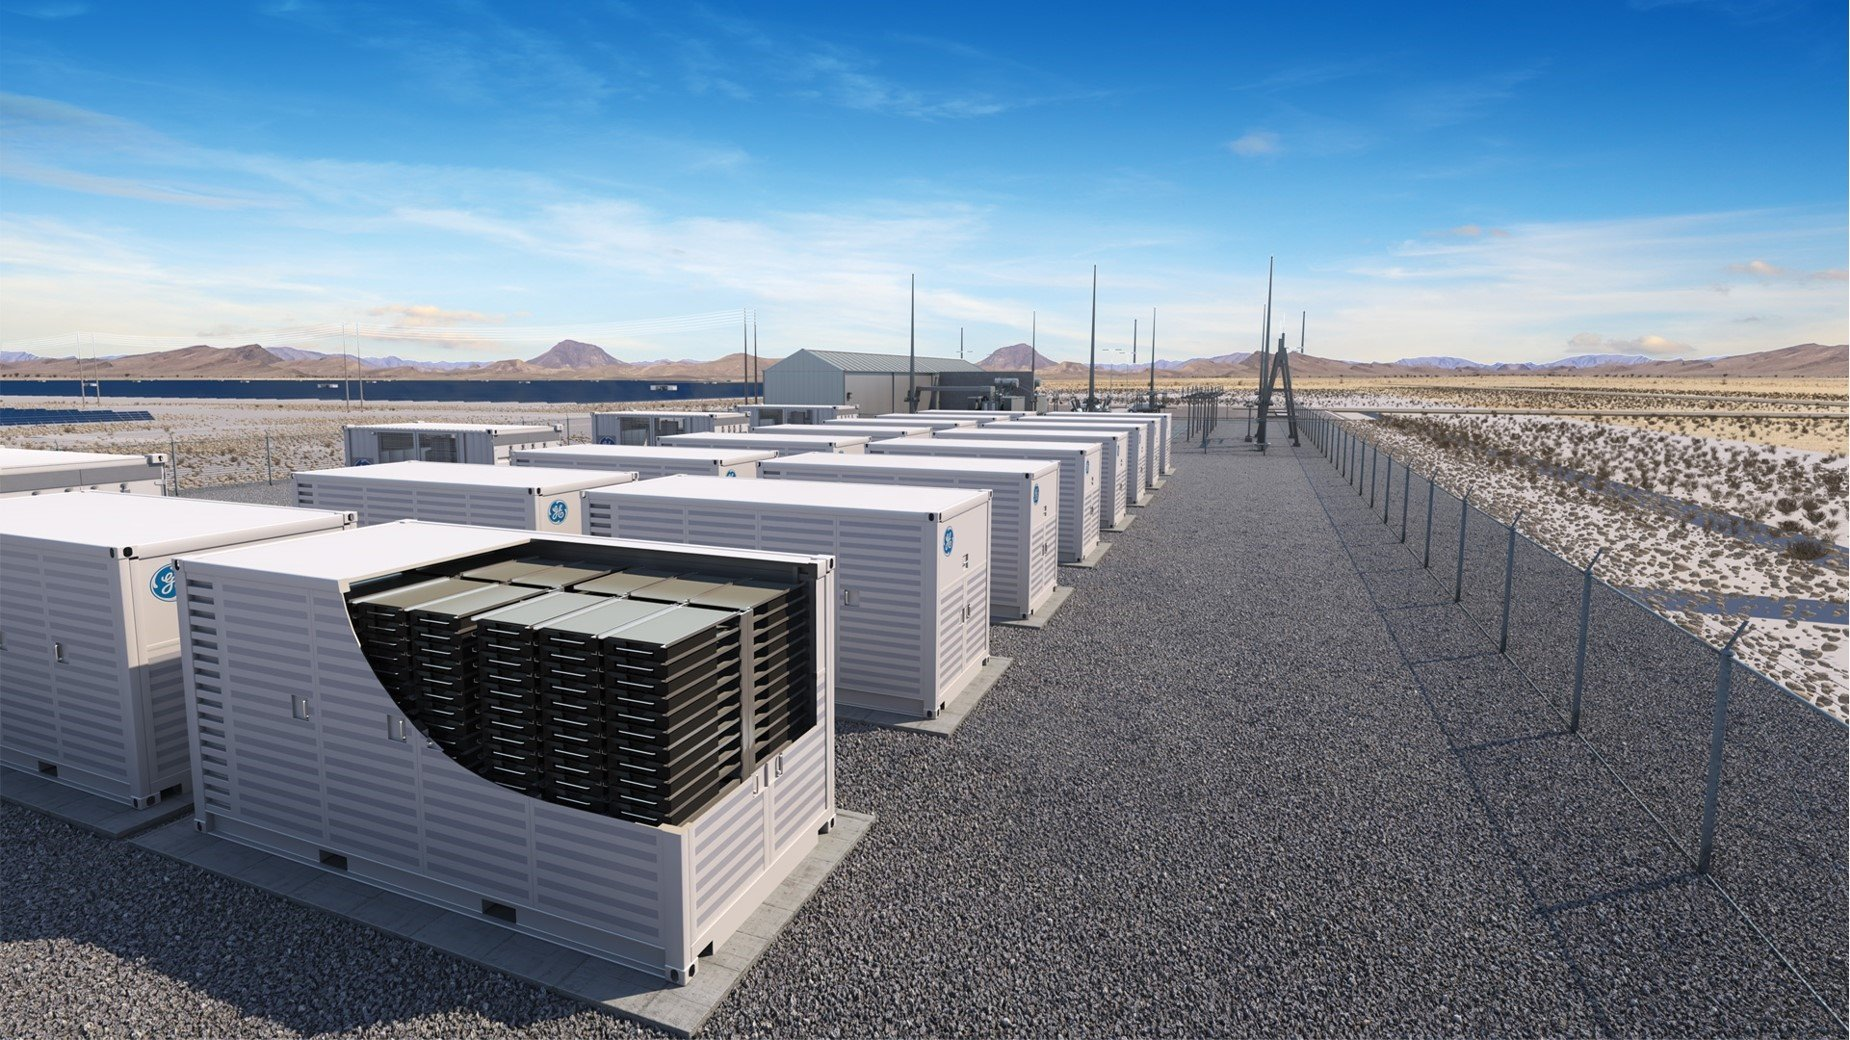 One More Time, With Feeling: GE's Latest Approach to Energy Storage